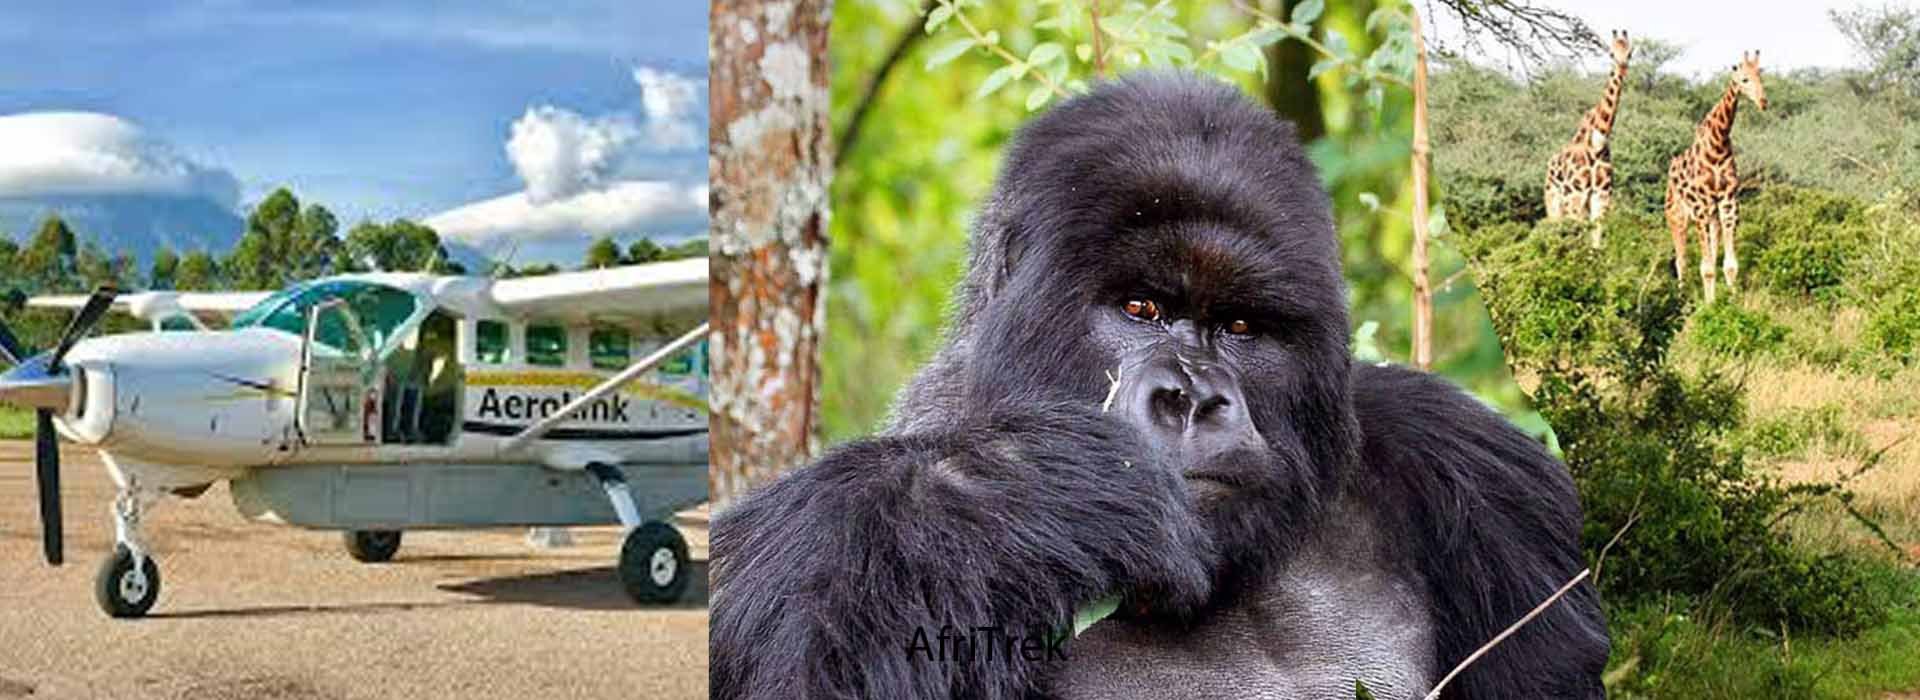 4 Days Flying Gorilla Trekking and Wildlife